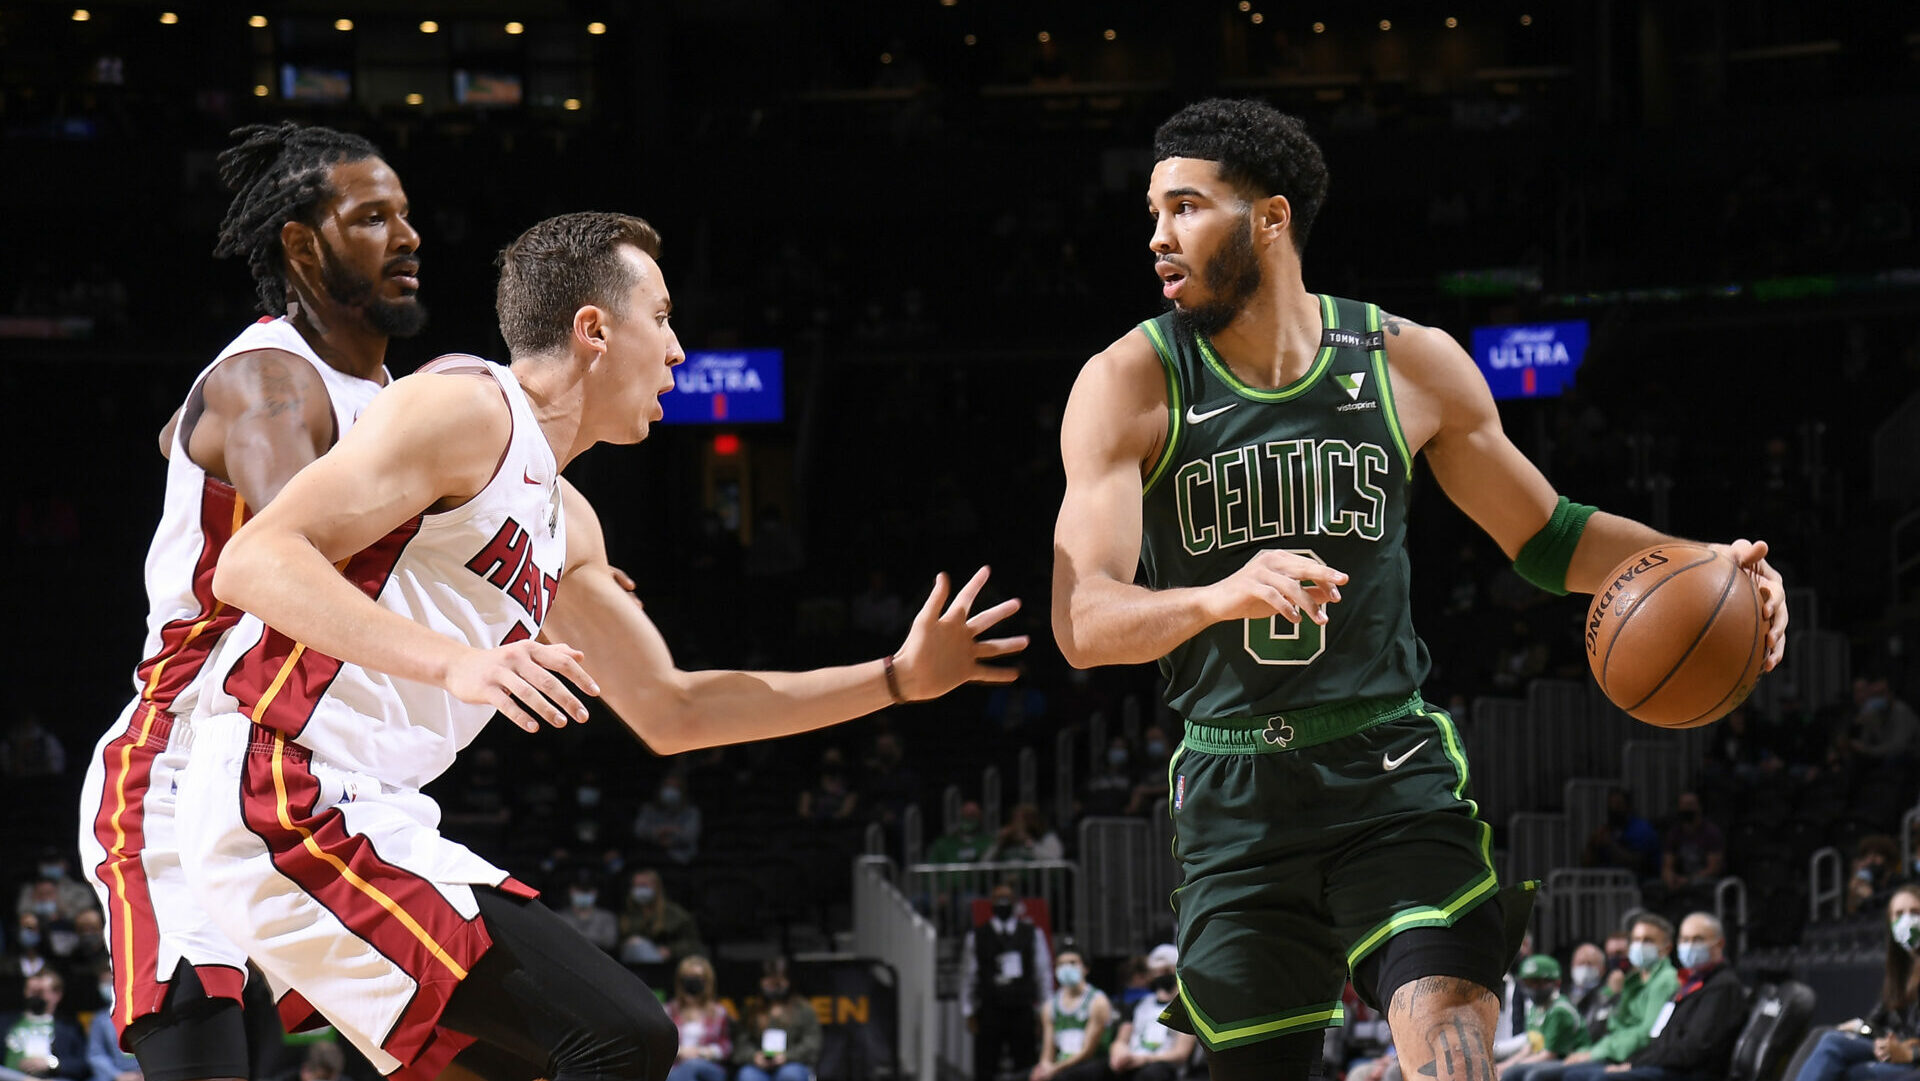 Celtics look to bounce back vs. Heat in key matchup